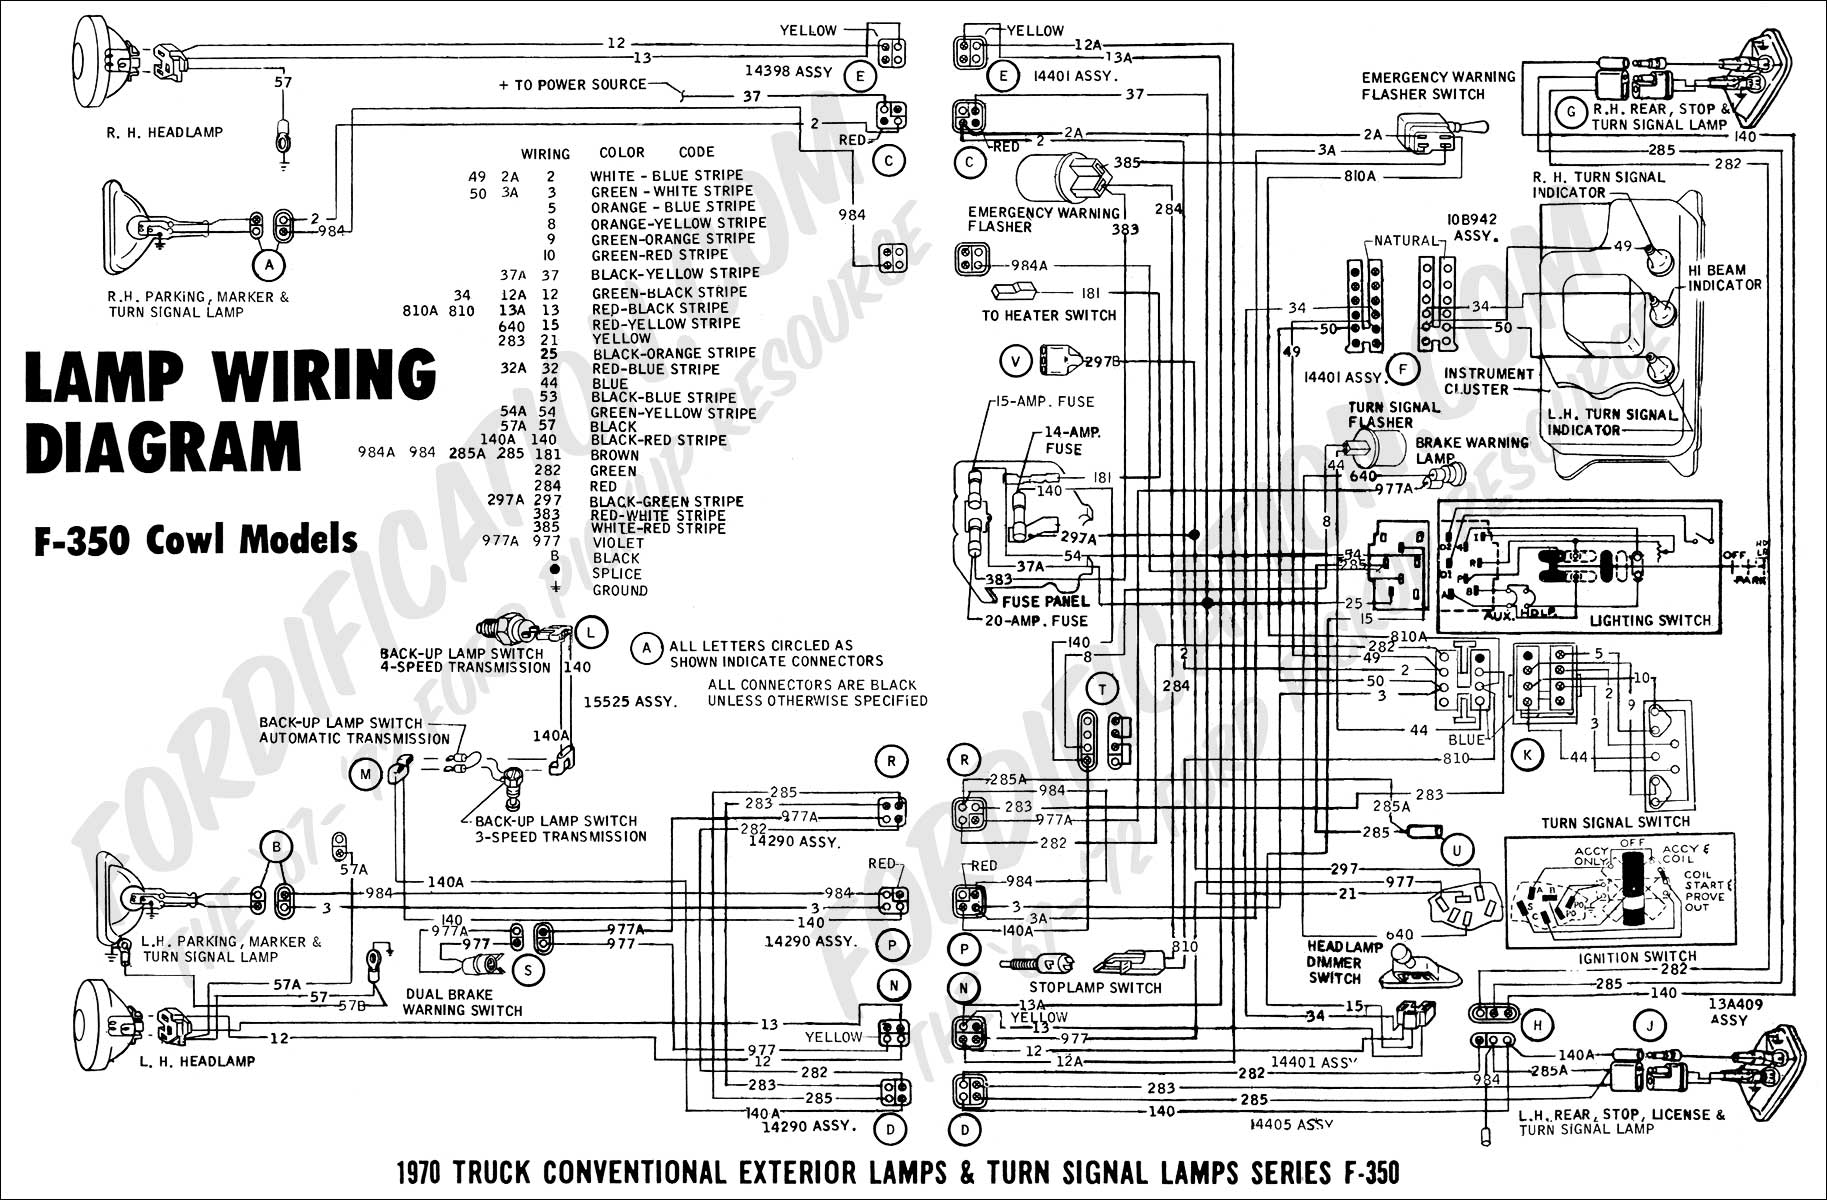 2011 ford f 350 wiring diagram data wiring diagrams rh 20 sdwedff treatymonitoring de 2011 ford edge wiring diagram 2011 ford fiesta wiring diagram